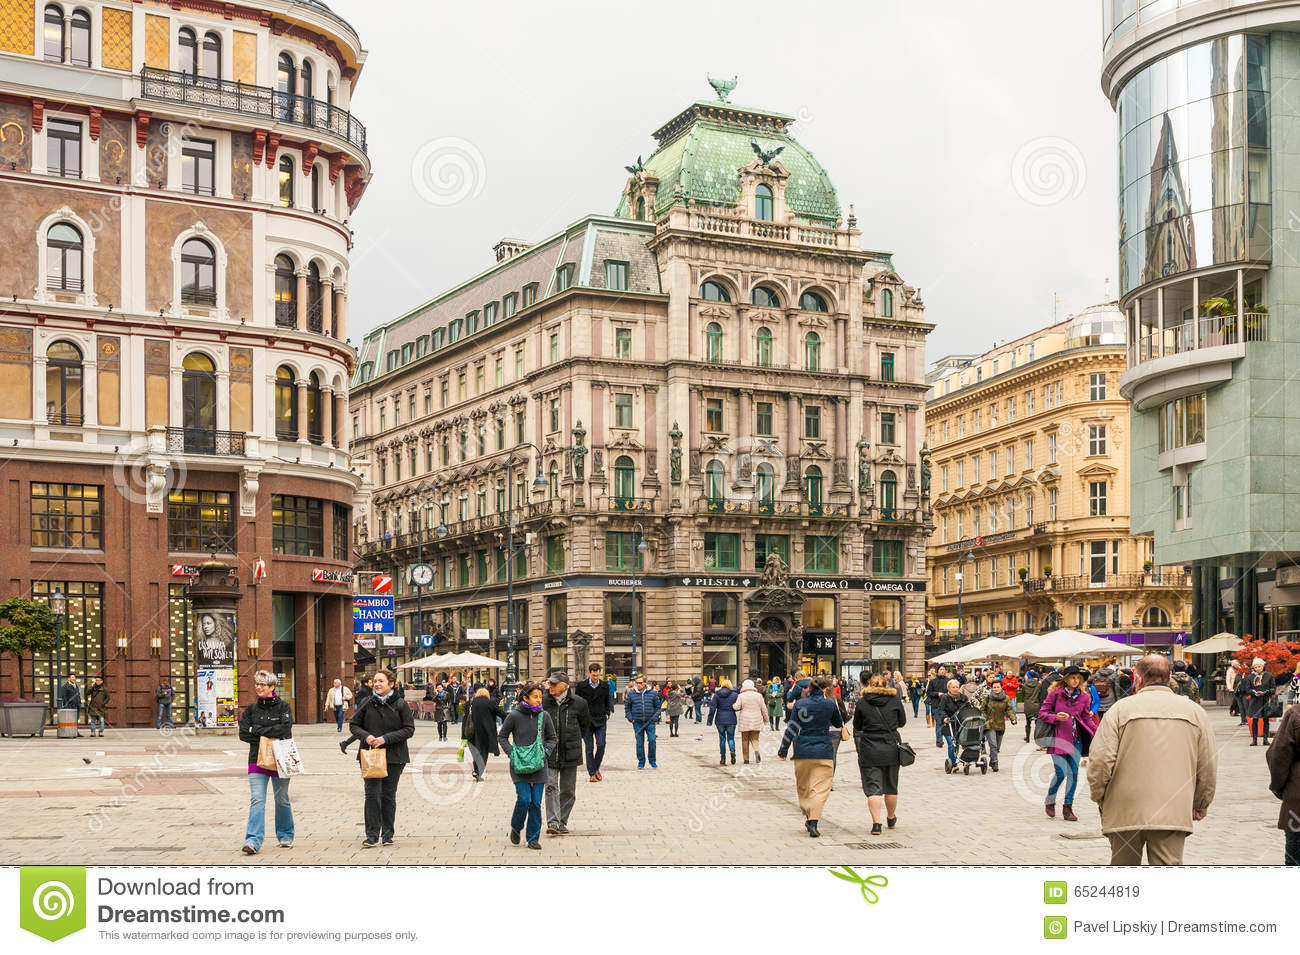 Tourists On Stephansplatz (Stephen's Square) In Old Town In Vienna.